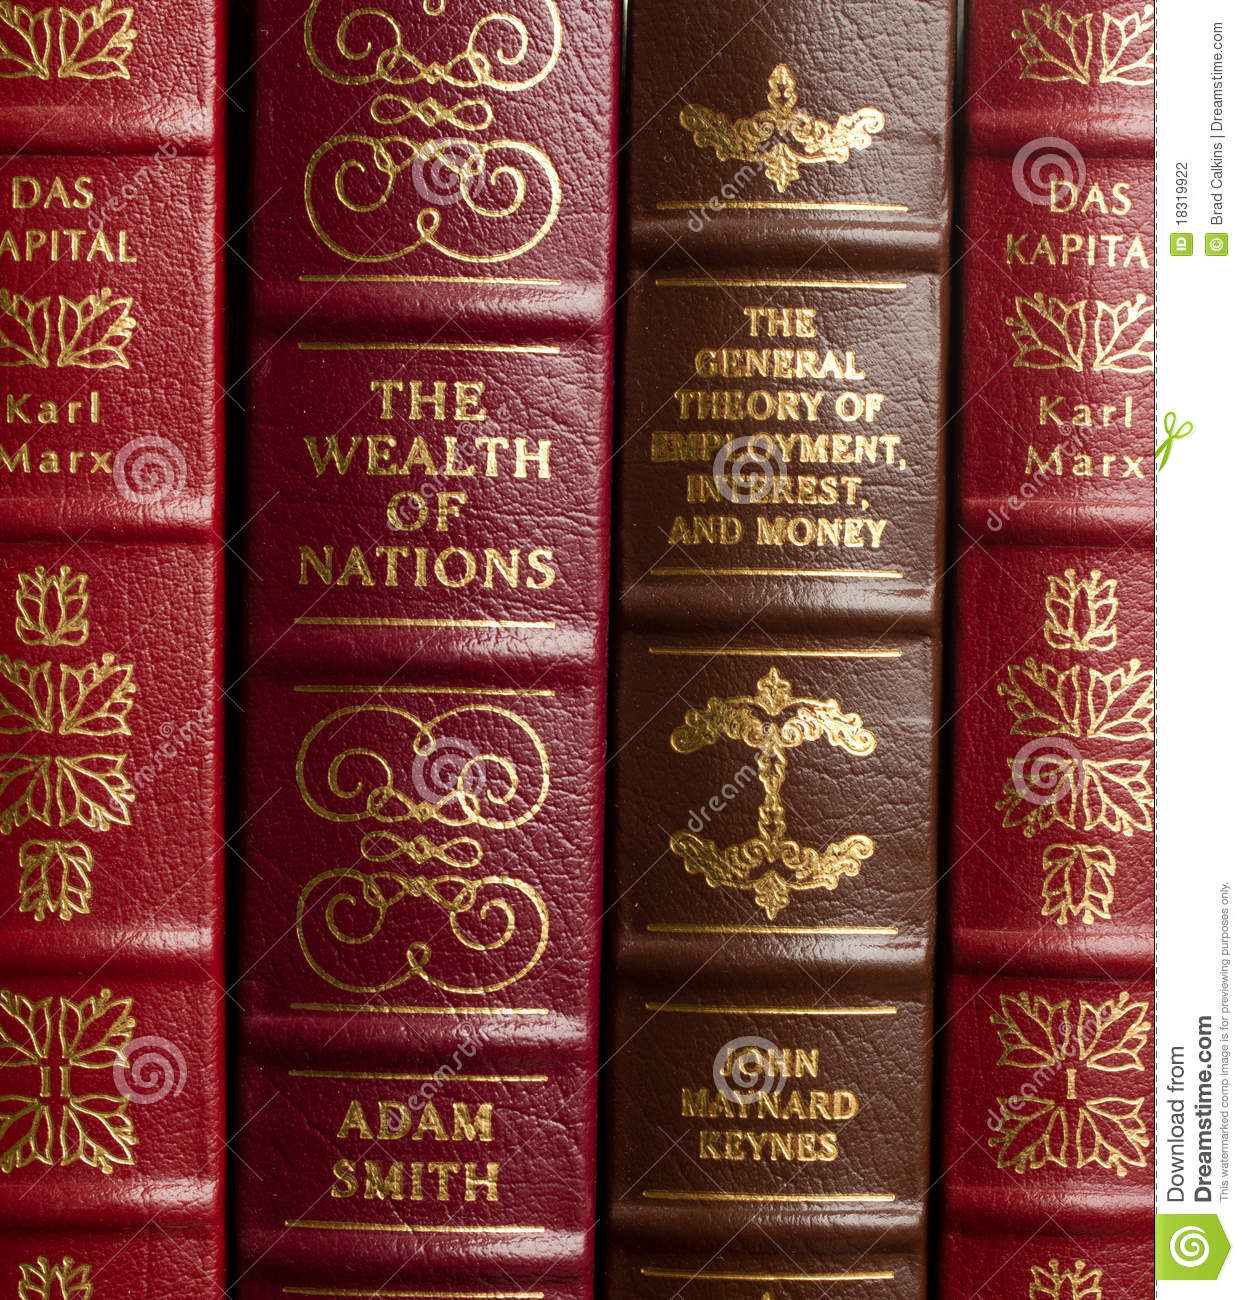 Adam Smith Libros Classici Di Economia Fotografia Editoriale Immagine Di